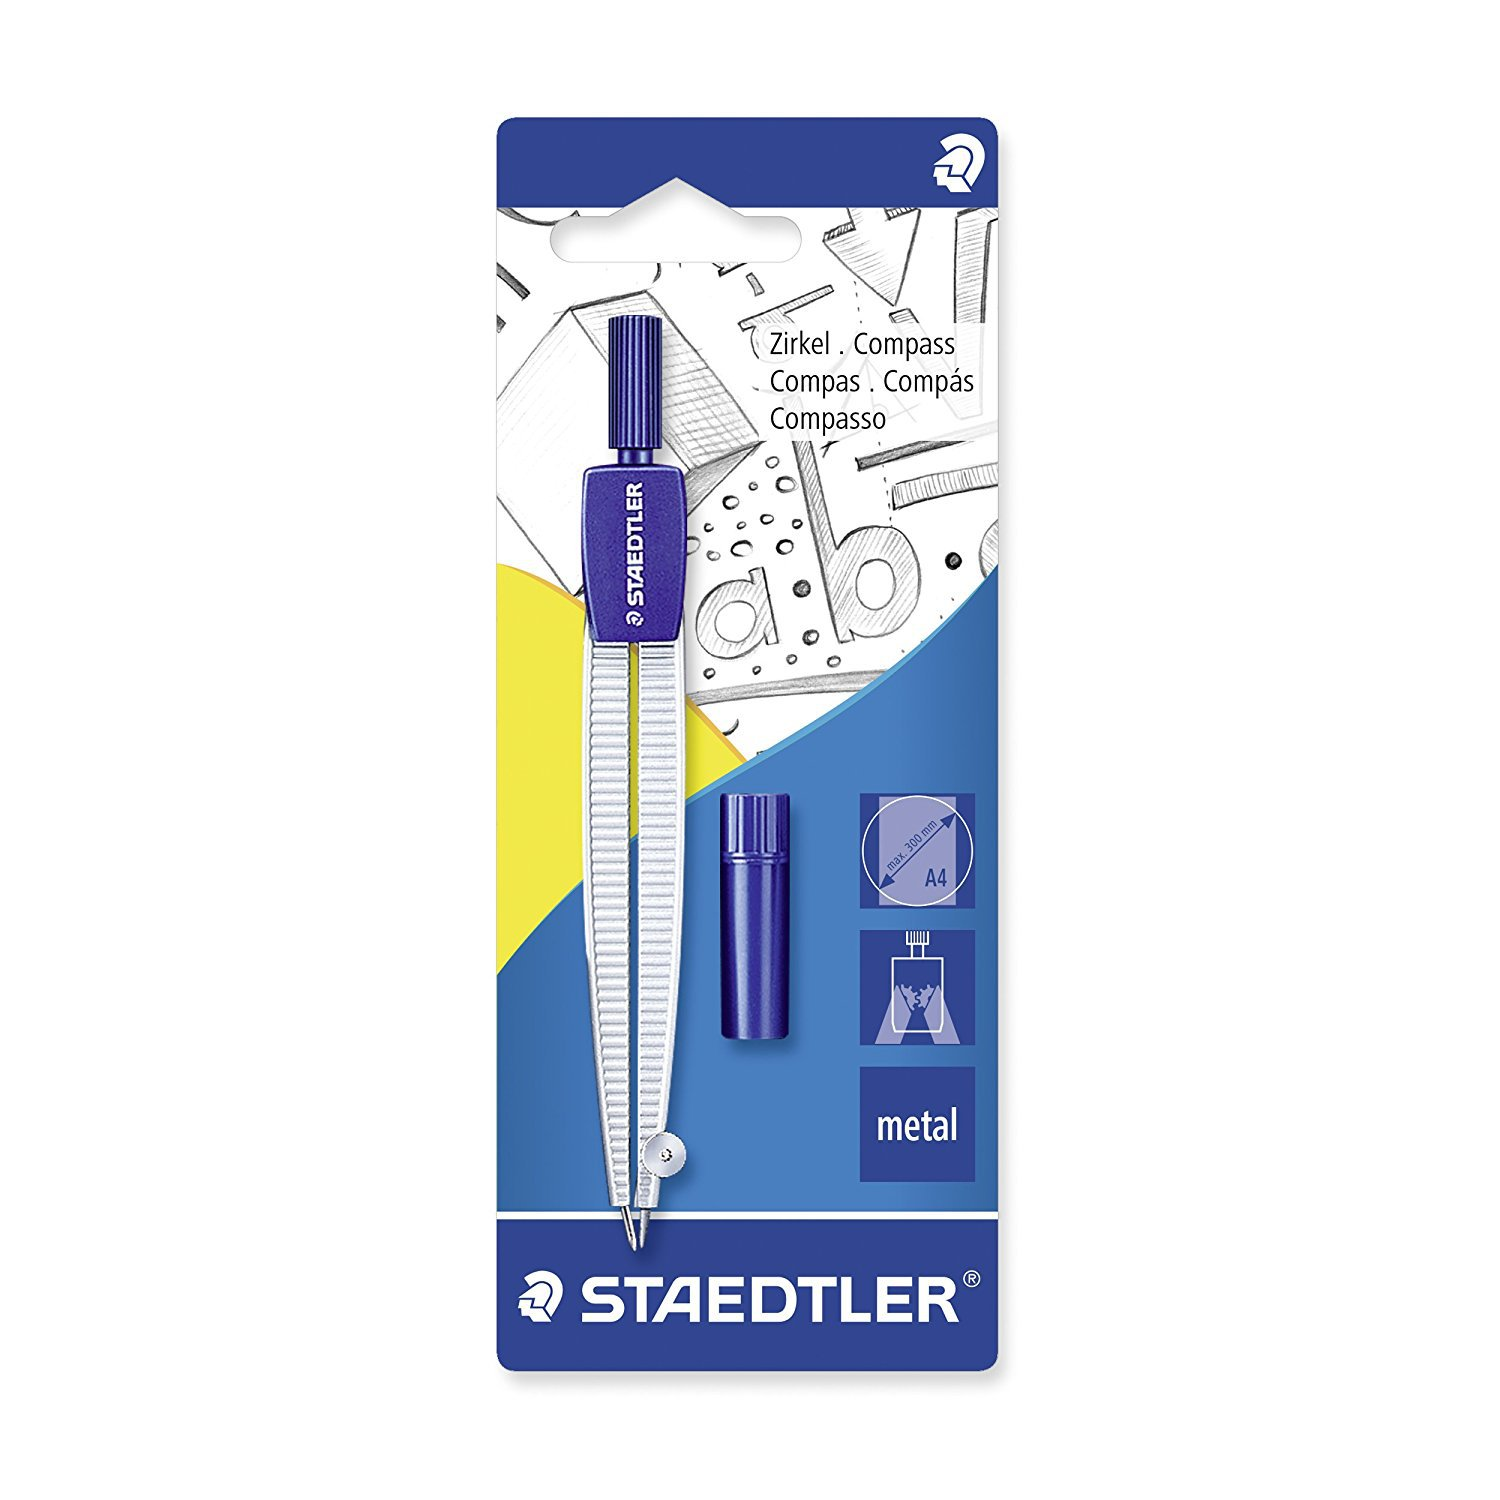 STAEDTLER Staedtler 550 50BK For Student Mapping Compasses (Scale) Hanging Card-